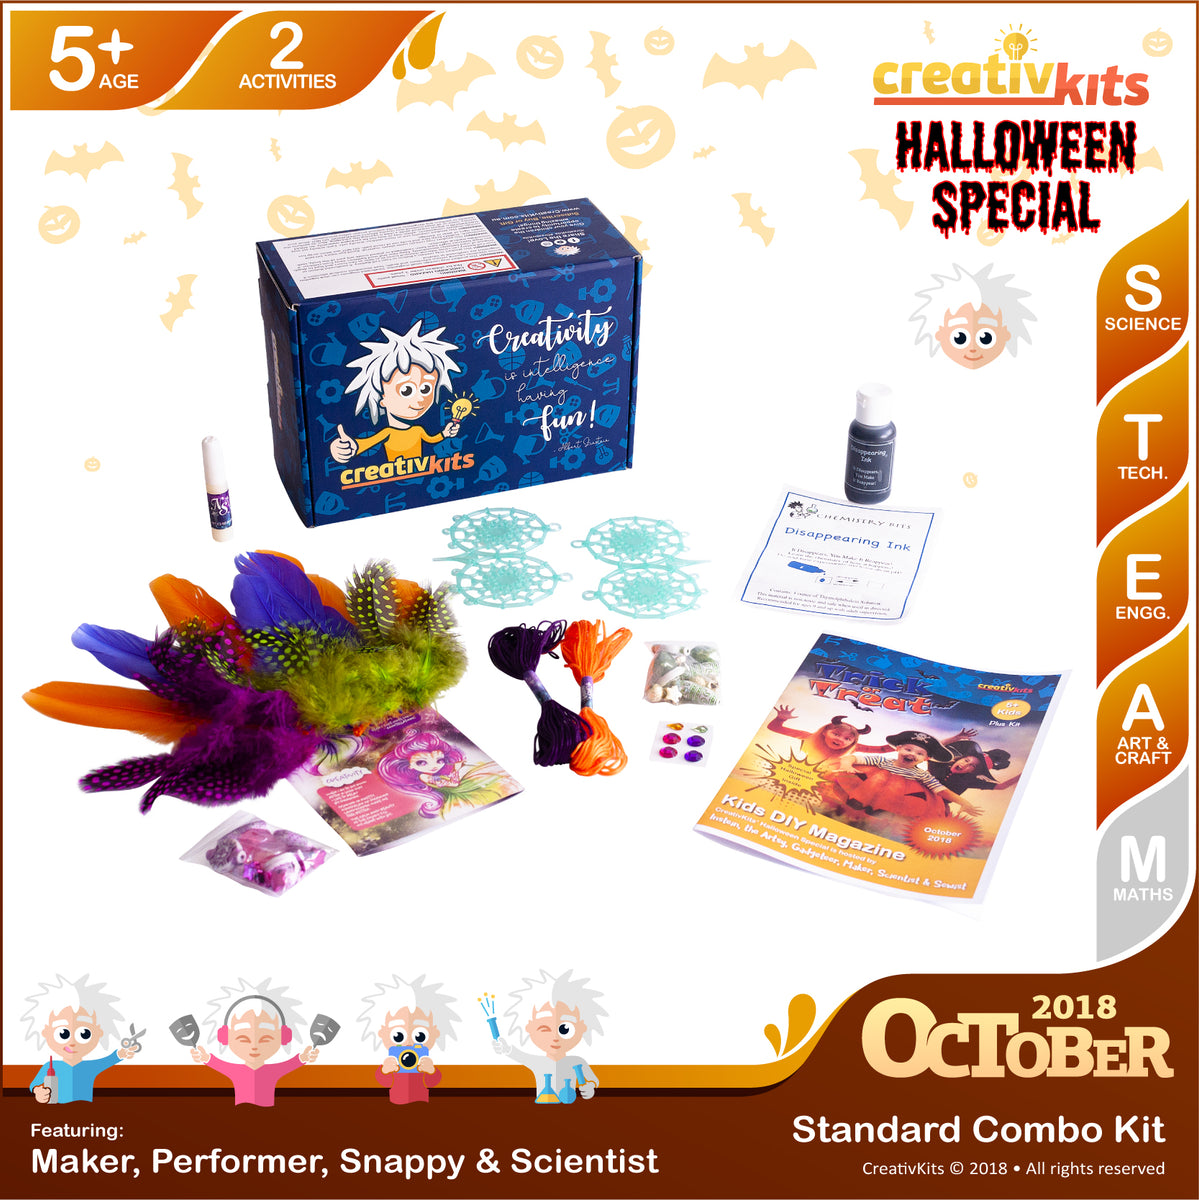 Build your Dreamcatcher and Spy using Disappearing Ink | October Standard Combo Kit | Age 5+